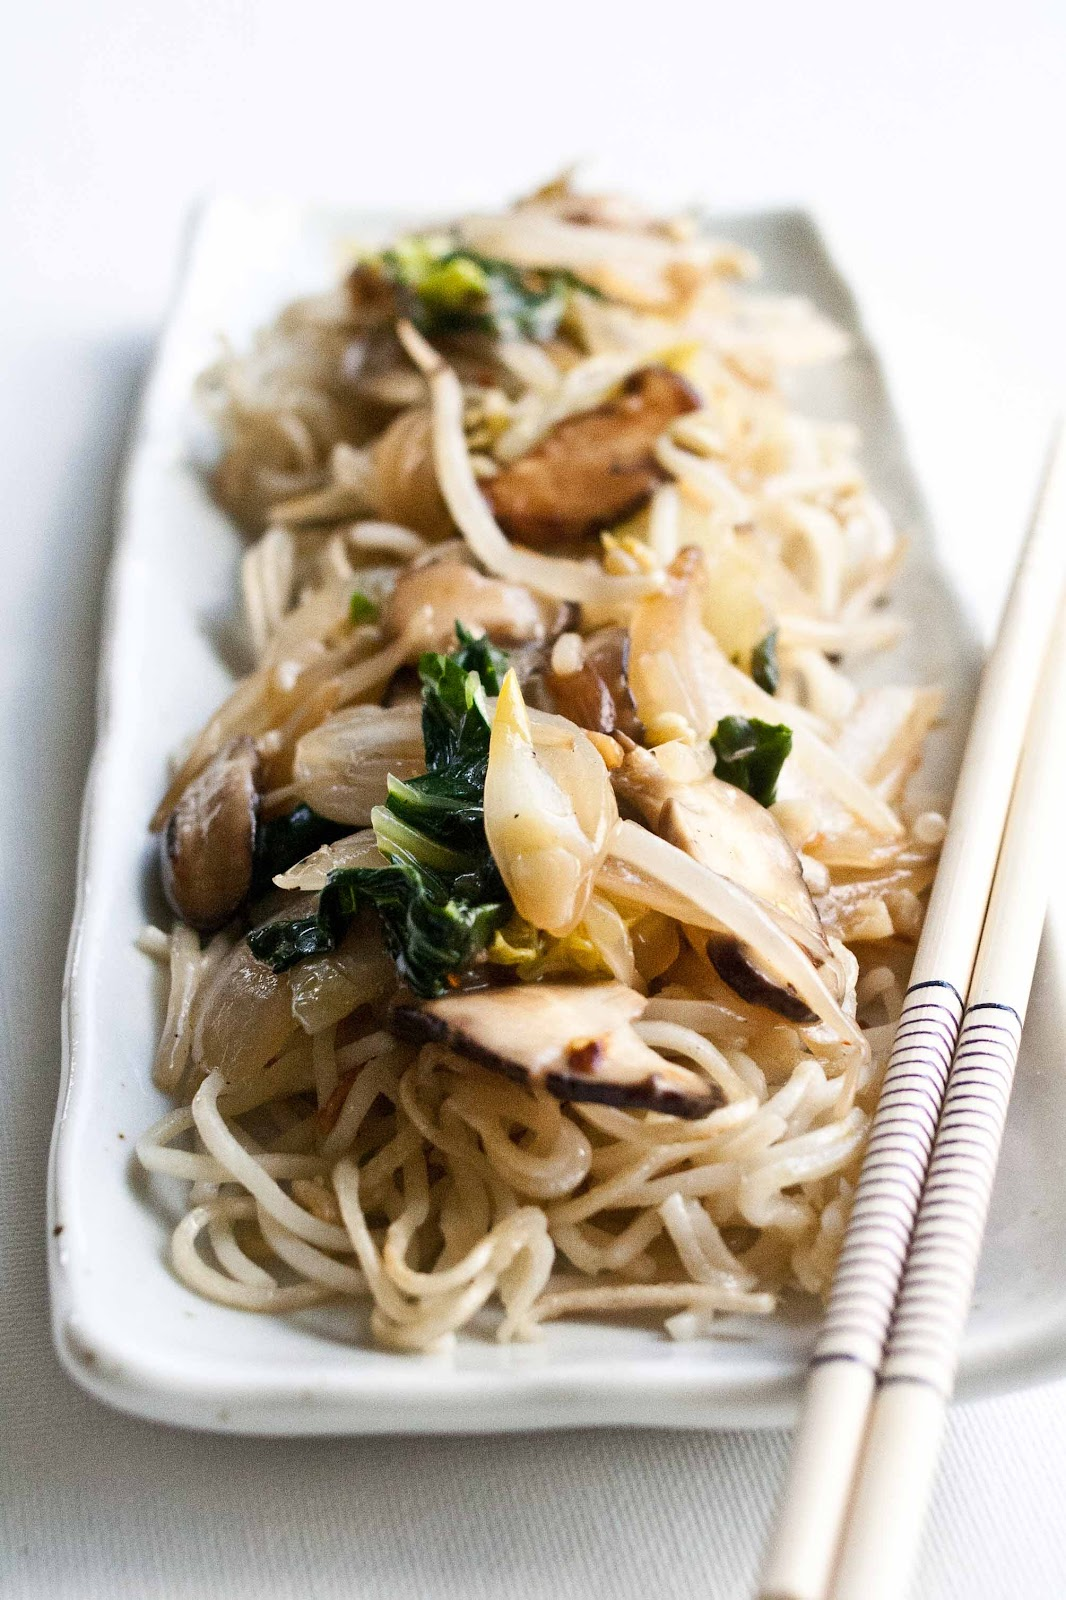 Groovy Foodjimoto Chow Mein With Pan Fried Noodles Home Interior And Landscaping Pimpapssignezvosmurscom